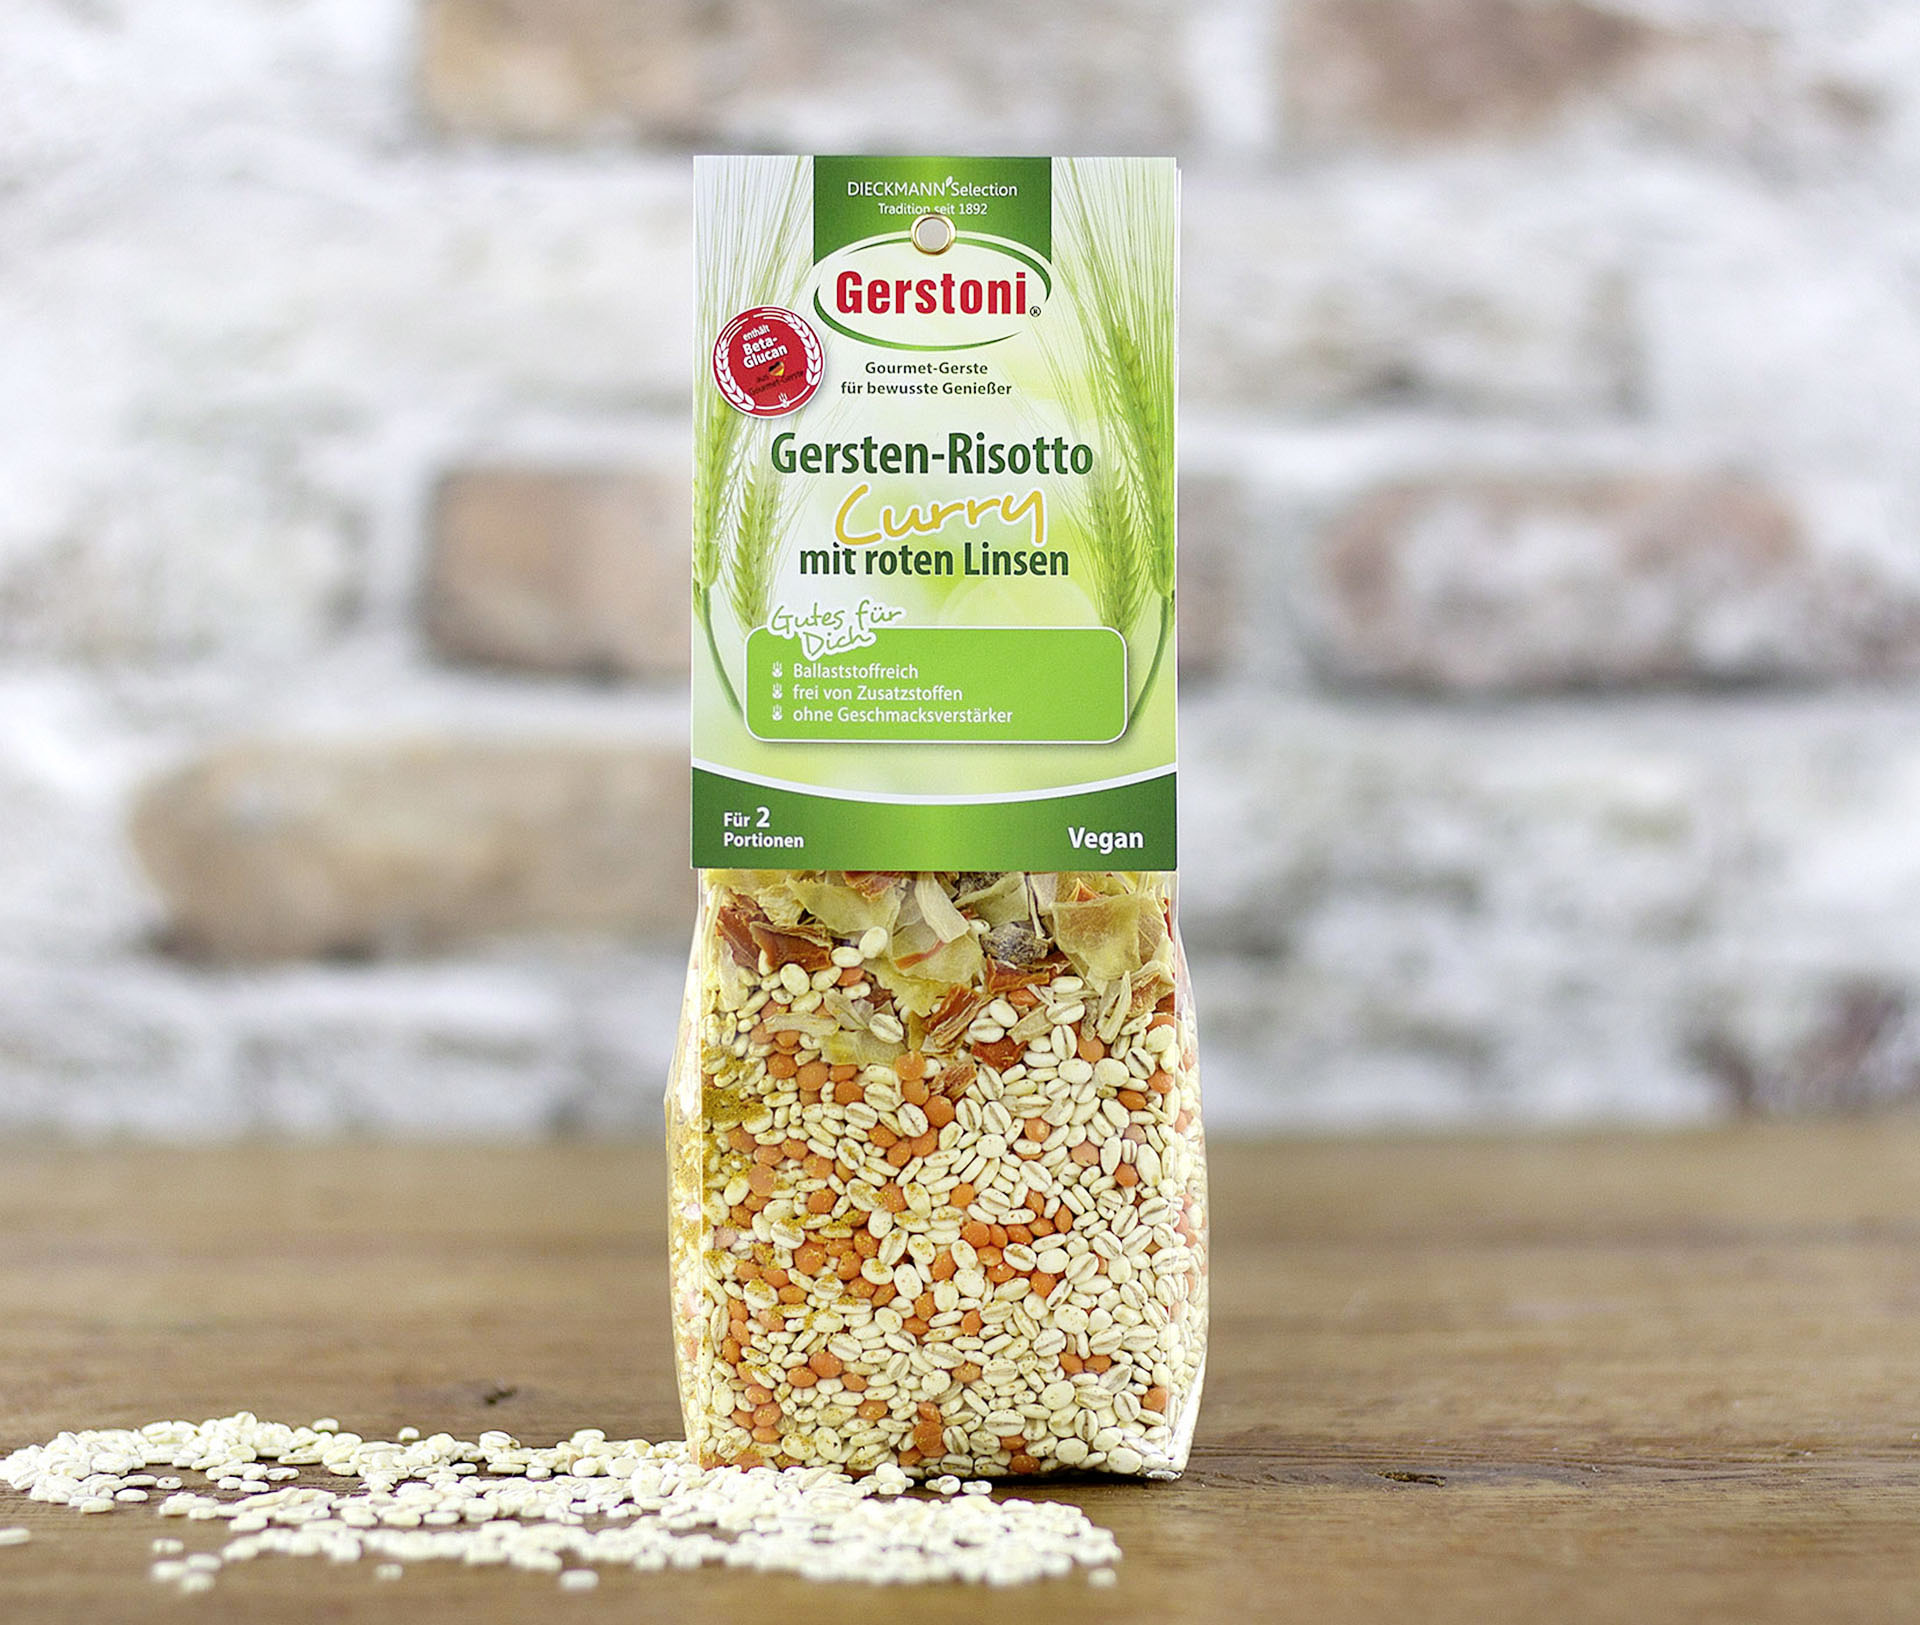 Gersten-Risotto Curry mit roten Linsen